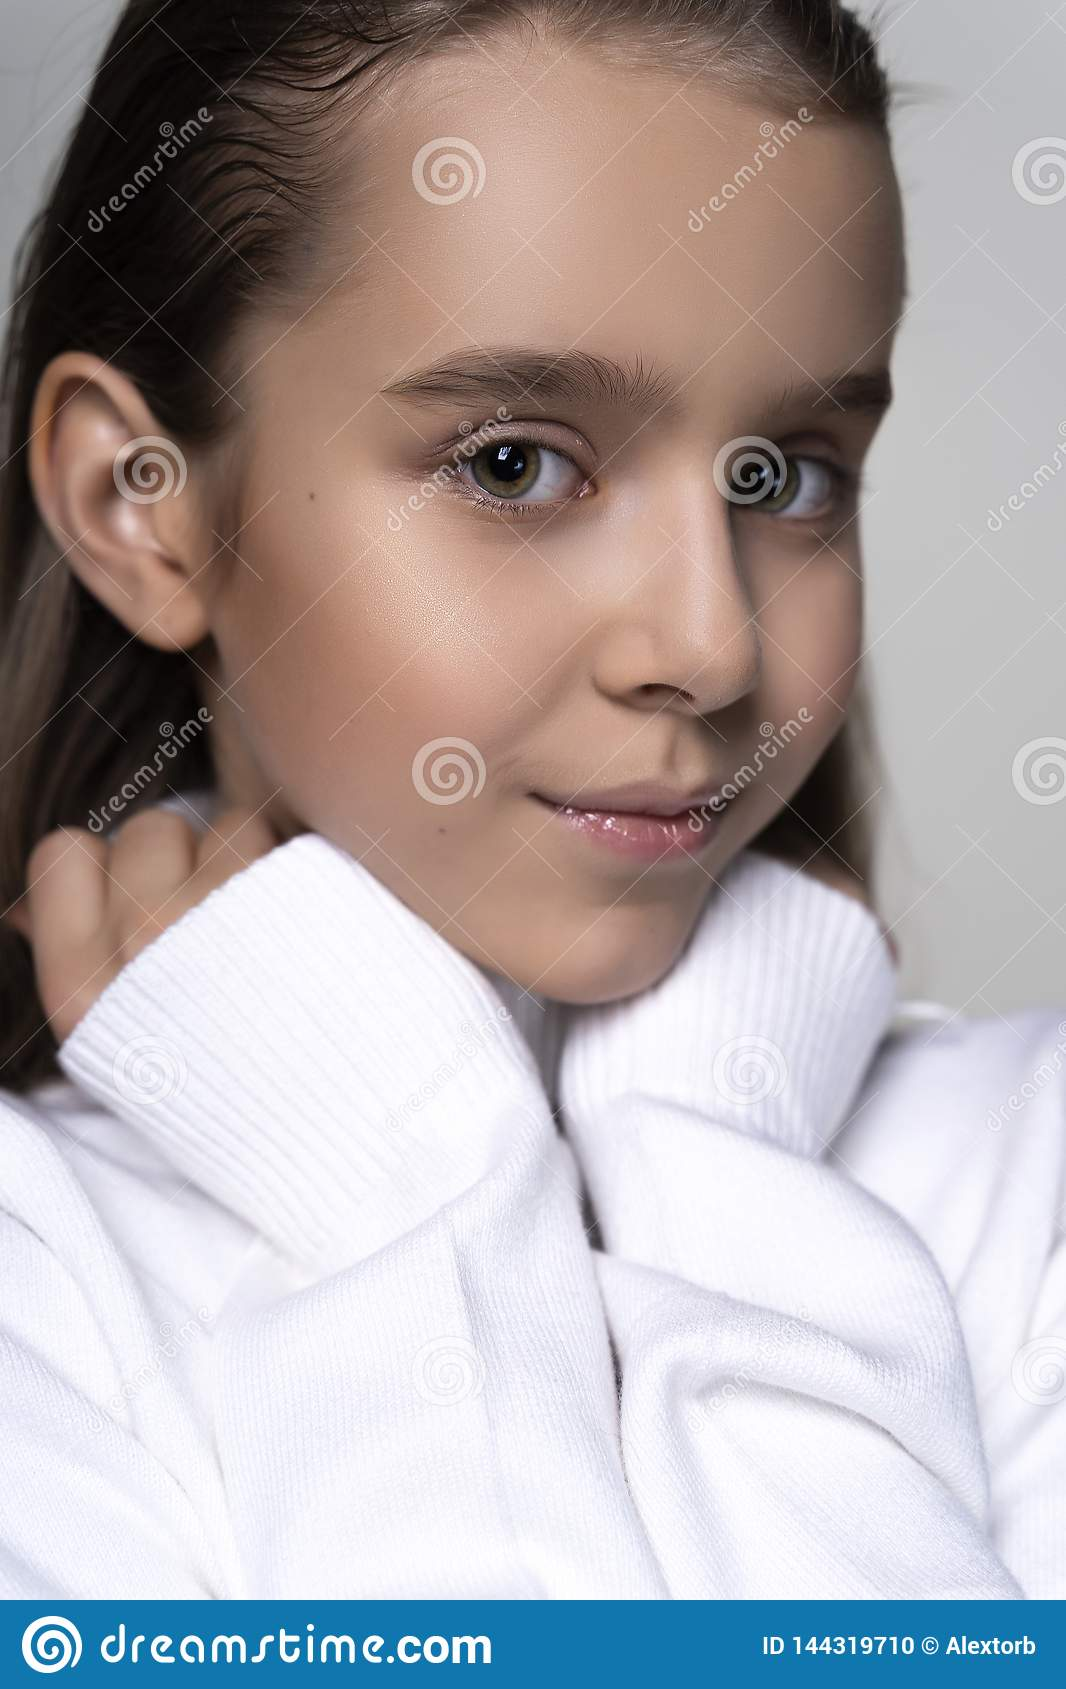 Portrait of a cute smiling teen girl wearing a white turtleneck sweater. on gray background. Advertising, trendy and